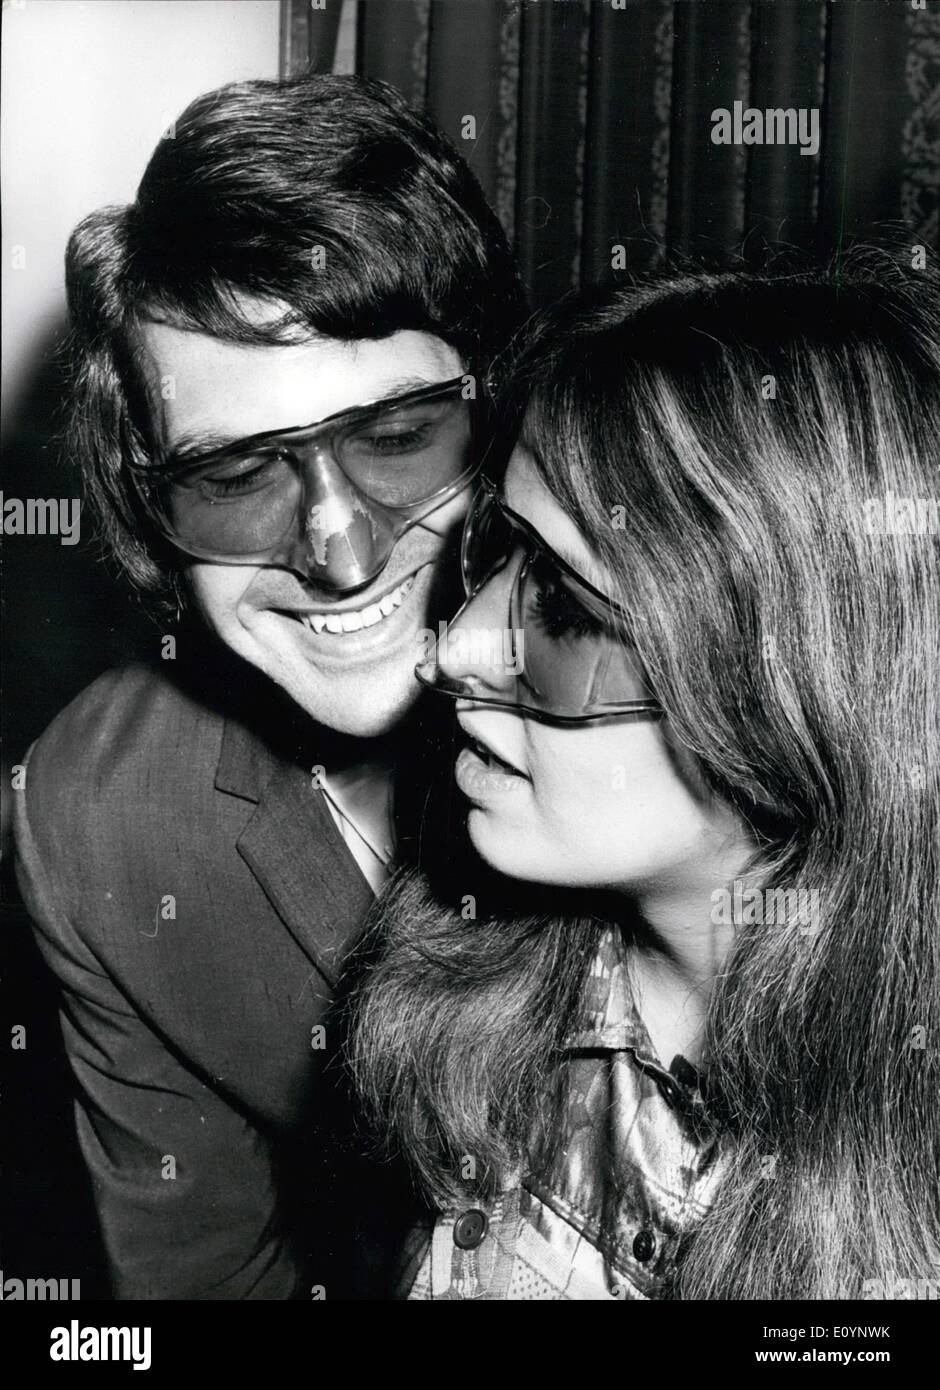 Jan. 01, 1971 - Sunglass Fair  Photo Shows: Ray Goldsmith and Lynn Oakley wearing the latest in sunglasses - The Nosegua - Stock Image